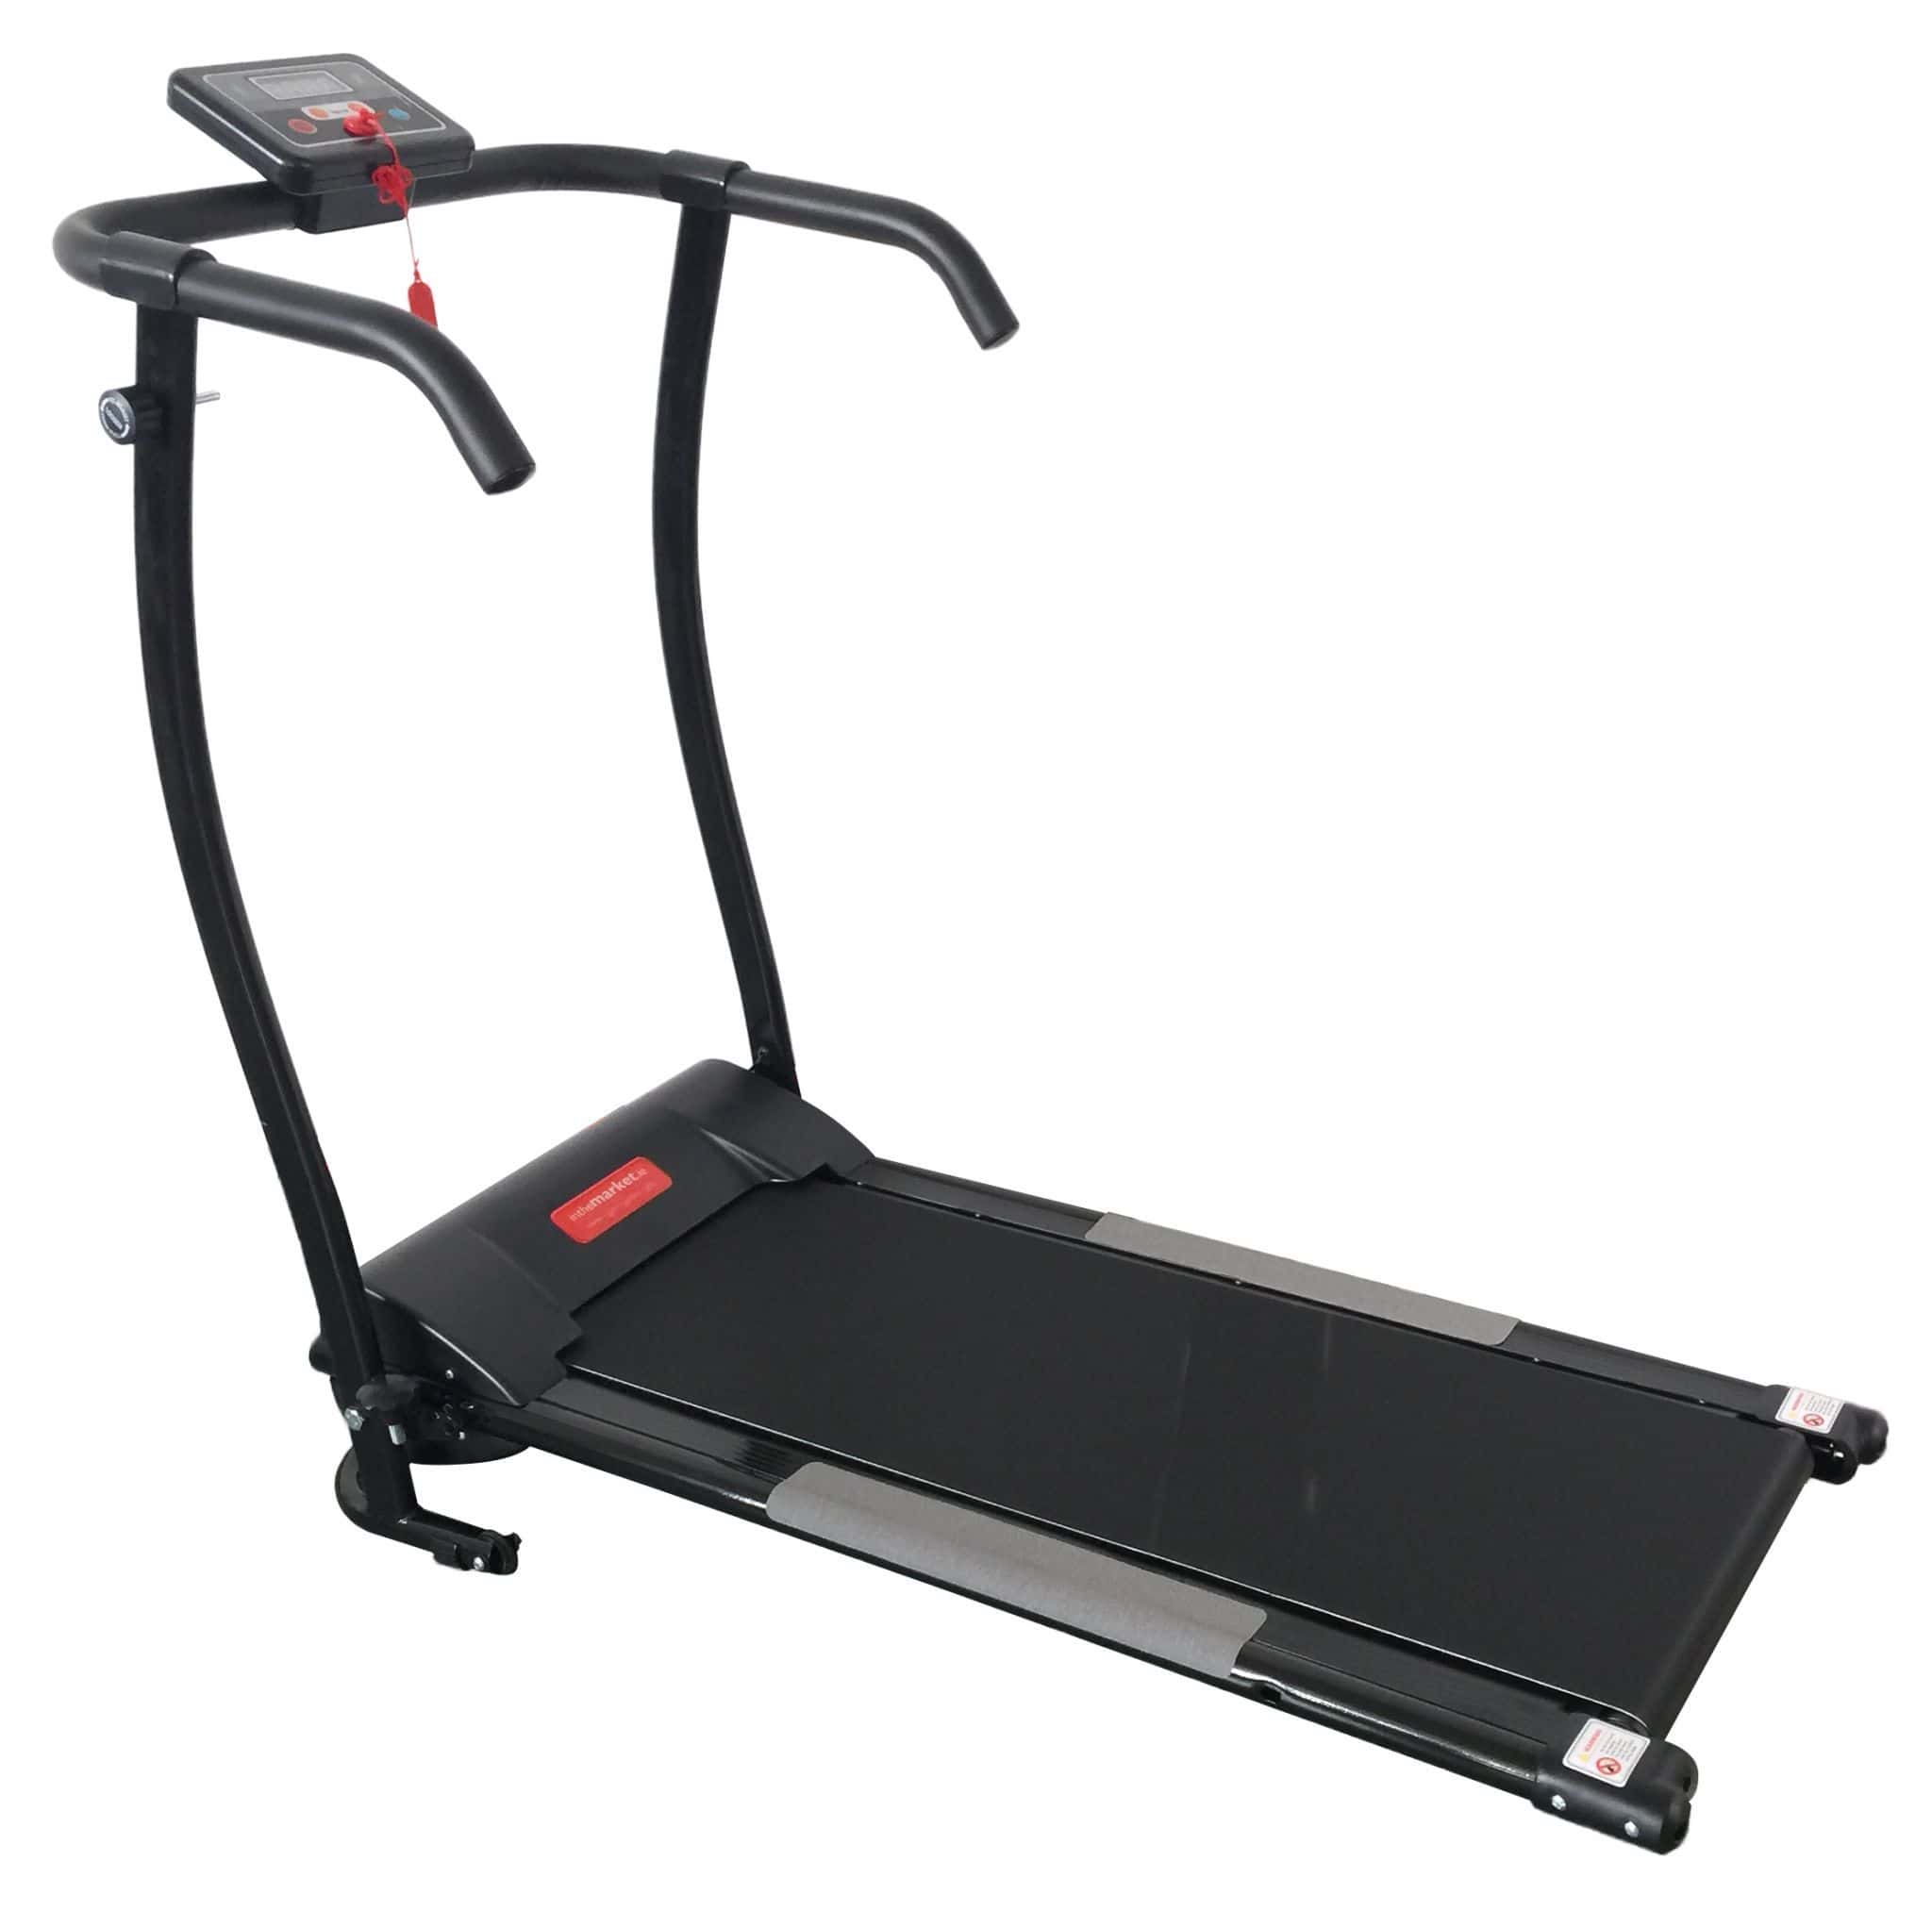 Foldable Treadmill Road Runner